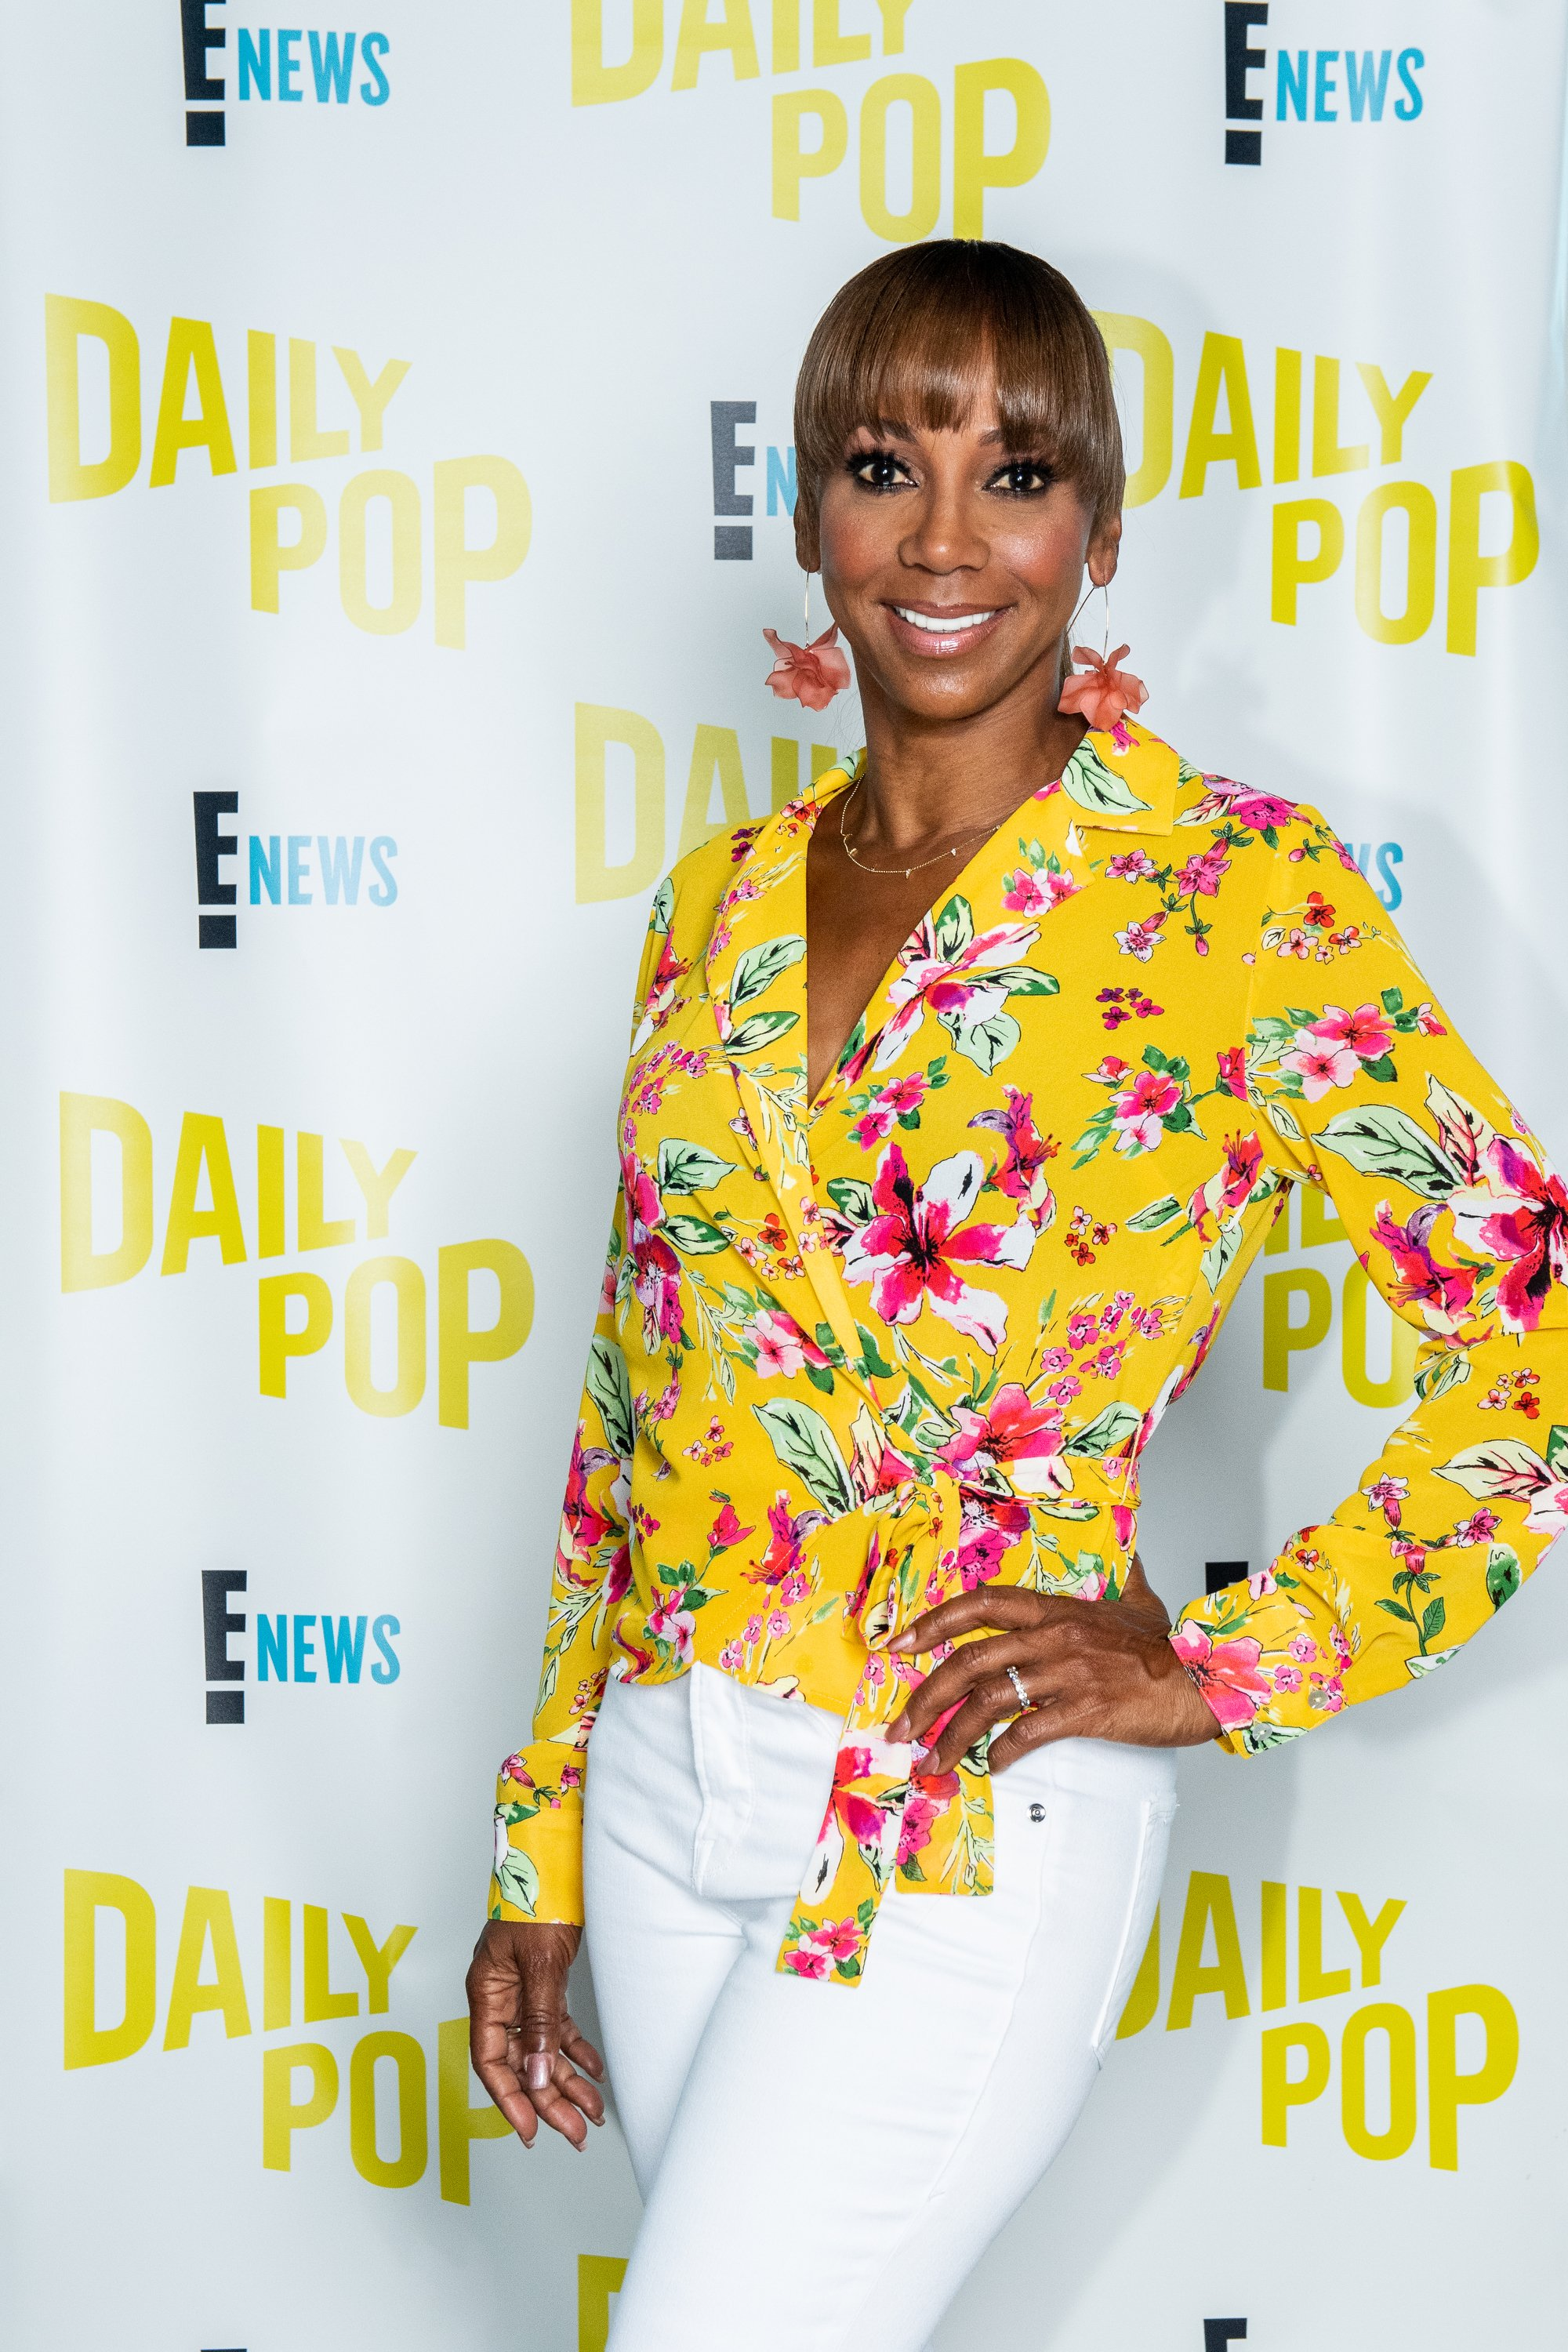 Image Credits: Getty Images / Aaron Poole / E! Entertainment / NBCU Photo Bank / NBCUniversal | Holly Robinson Peete poses for a photo on the set of Daily Pop.